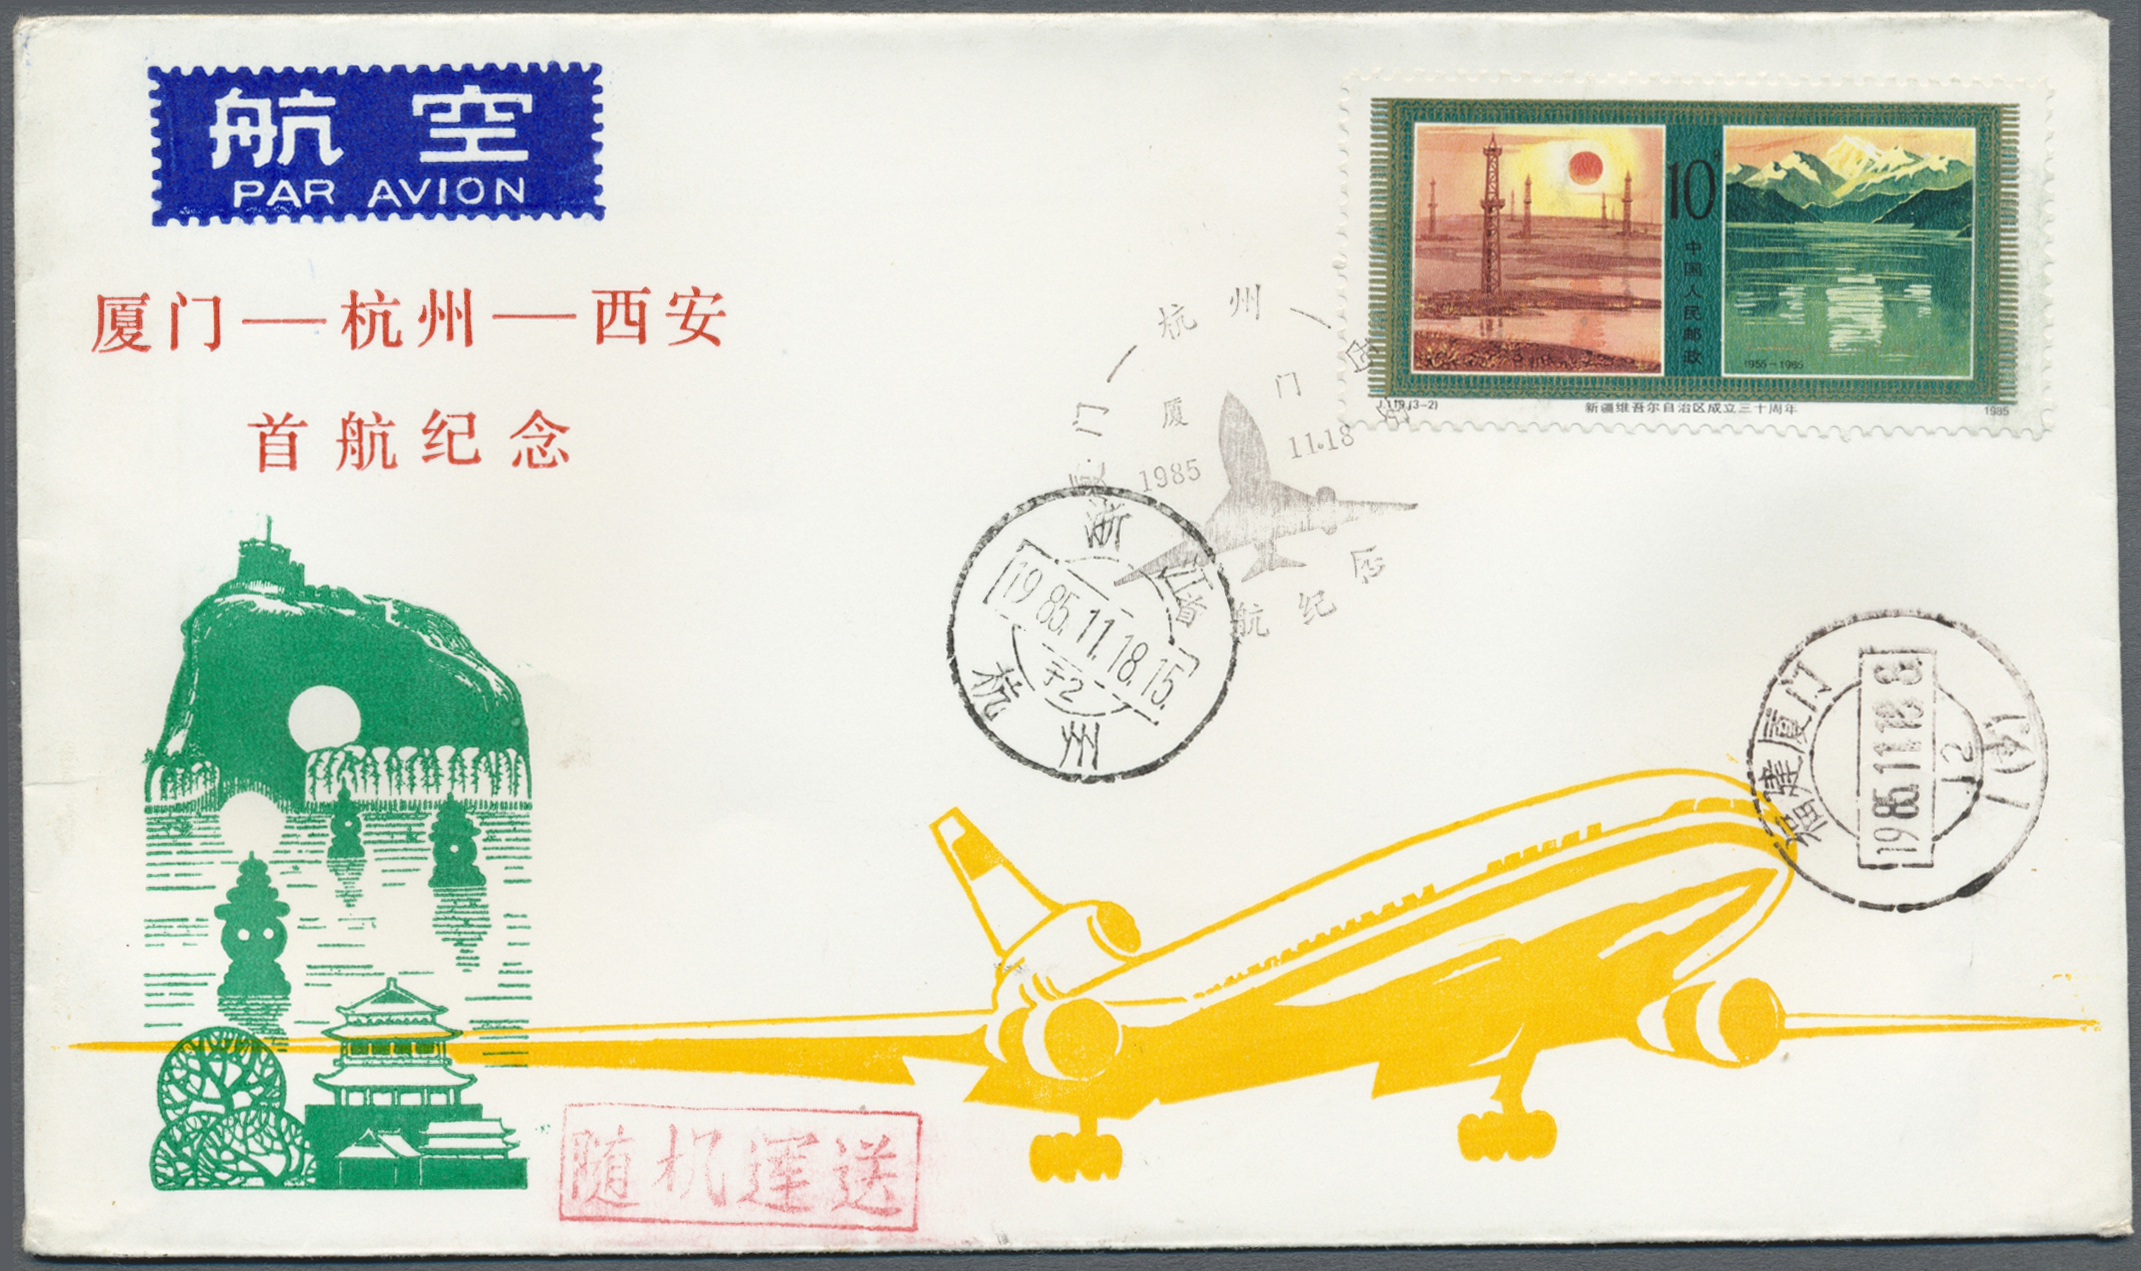 Lot 34470 - China - Flugpost  -  Auktionshaus Christoph Gärtner GmbH & Co. KG Collections Germany,  Collections Supplement, Surprise boxes #39 Day 7